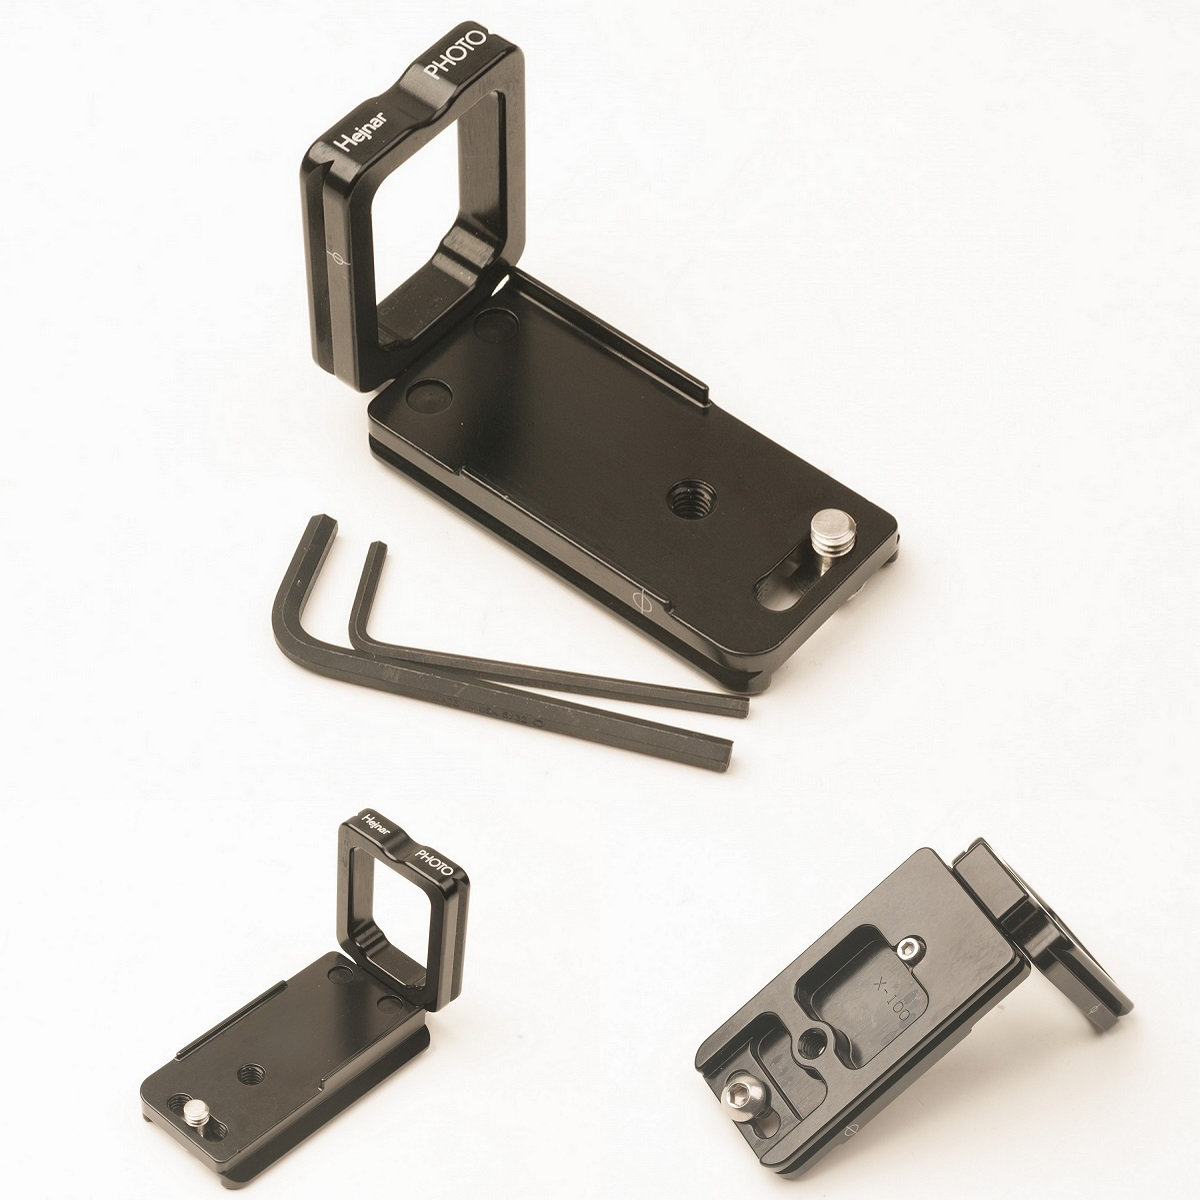 Hejnar PHOTO X100 Modular L Bracket top and bottom details